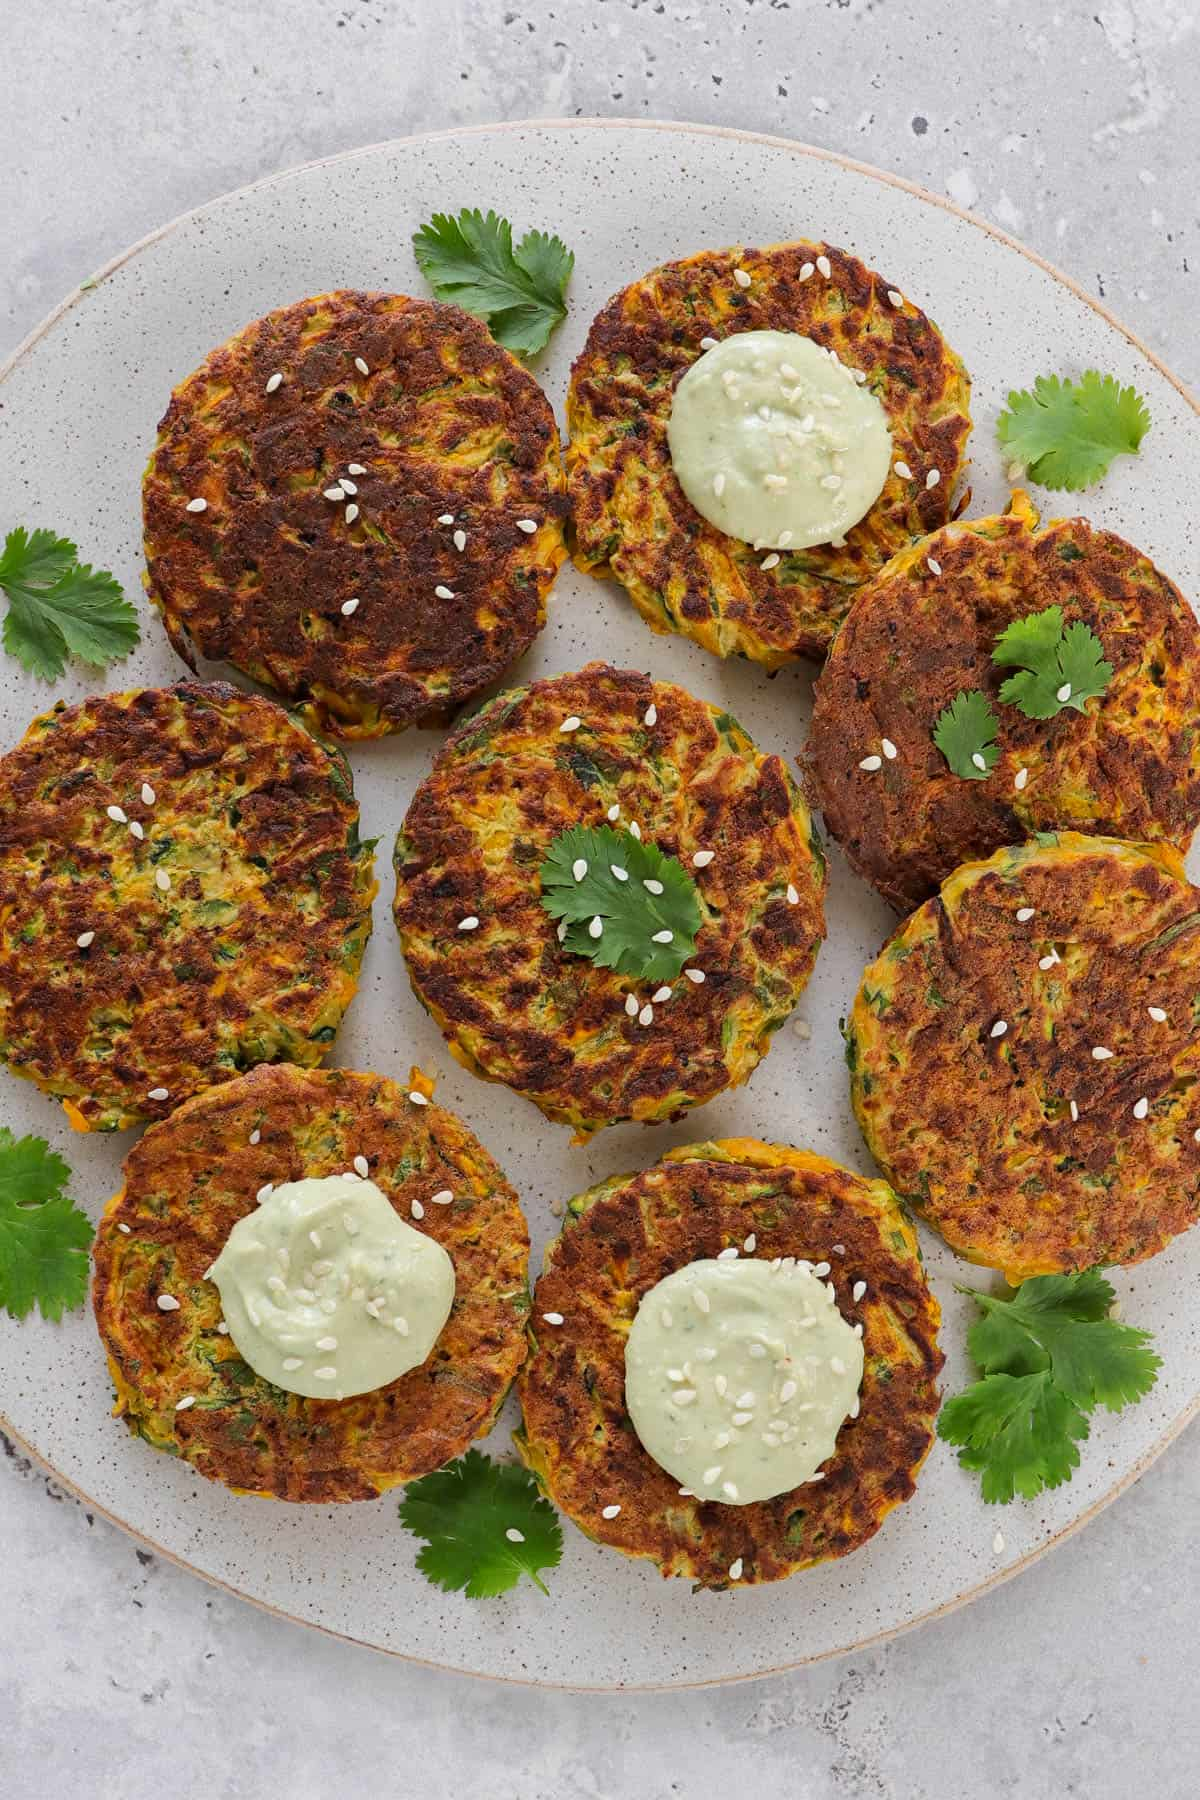 Cooked patties on a plate with coriander leaves, avocado dip dolloped on top and sprinkled with sesame seeds.